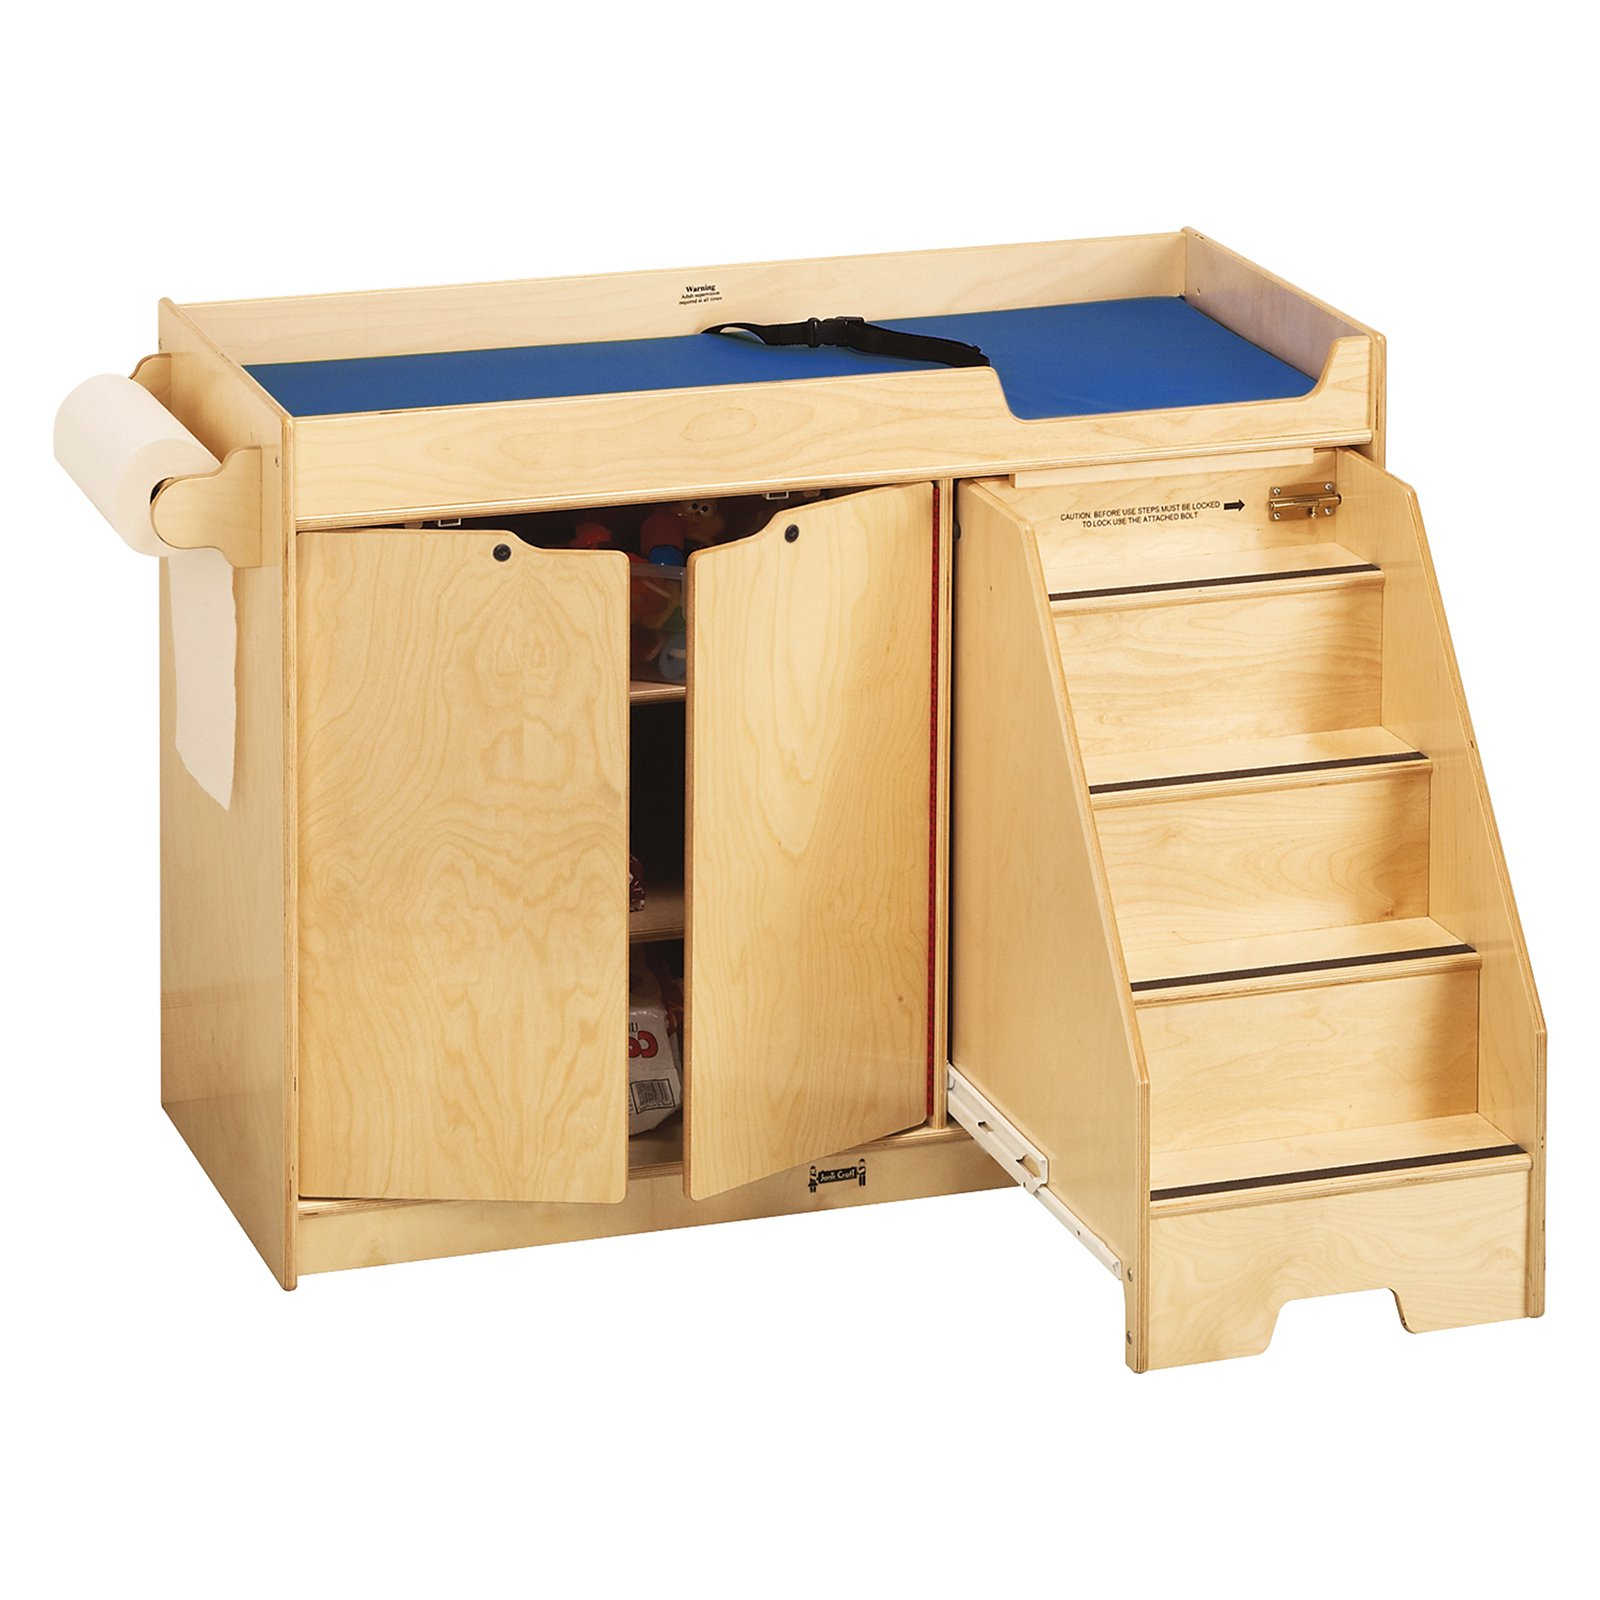 Jonti-Craft Changing Table with Stairs by Jonti-Craft